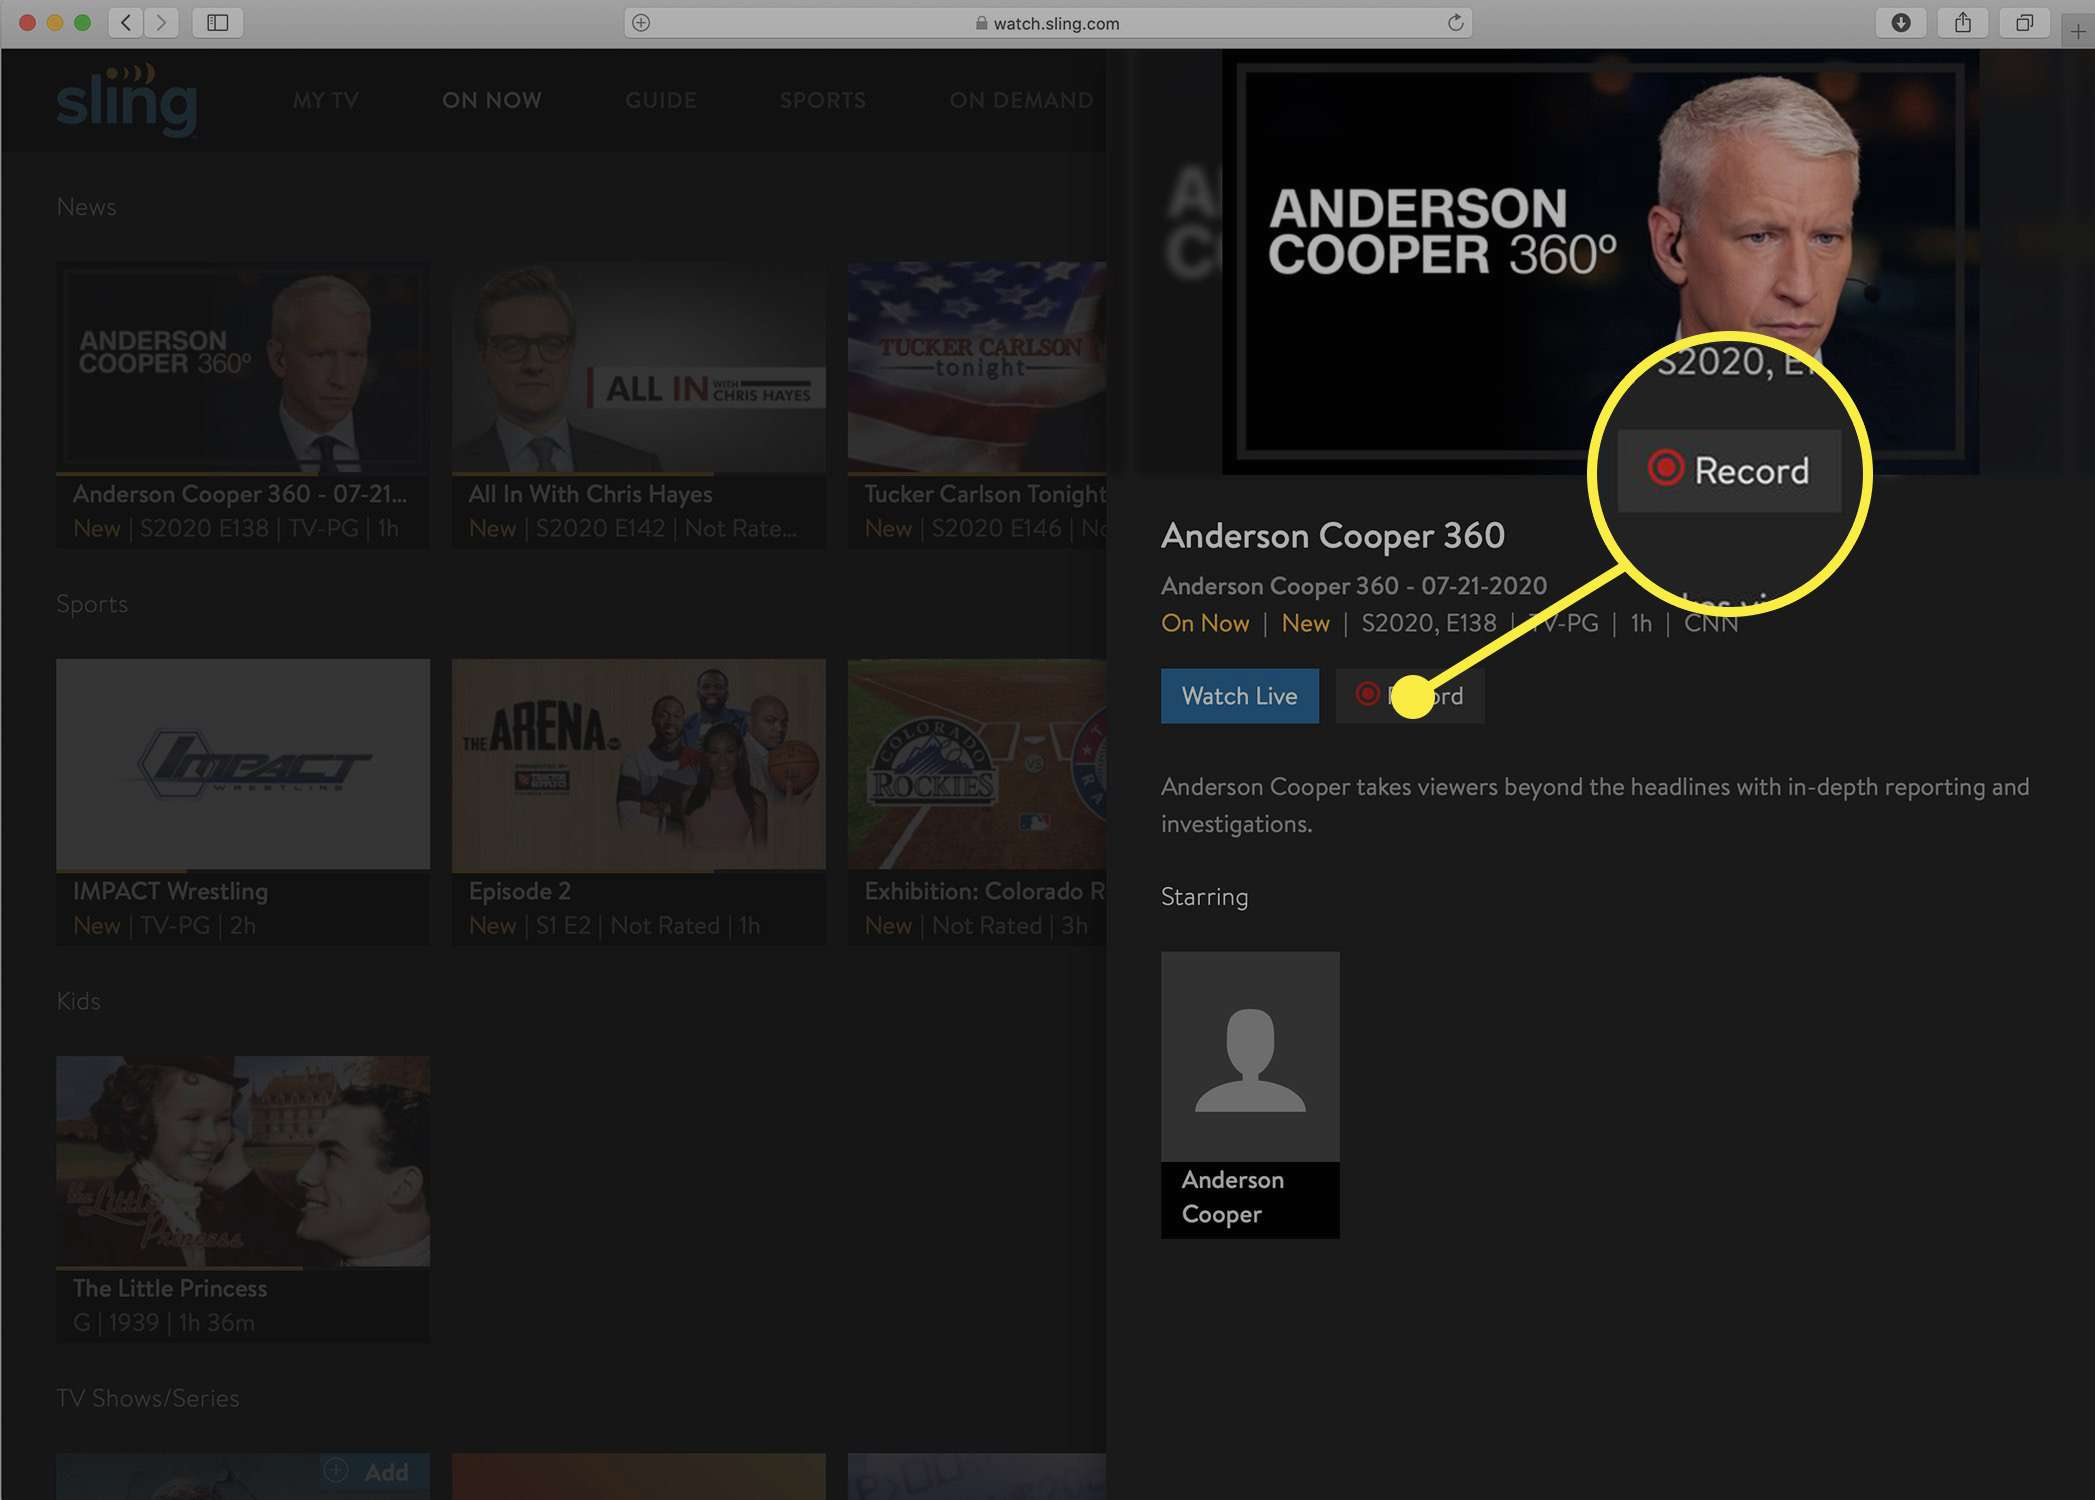 Screenshot of the Sling TV show information screen with Record option.